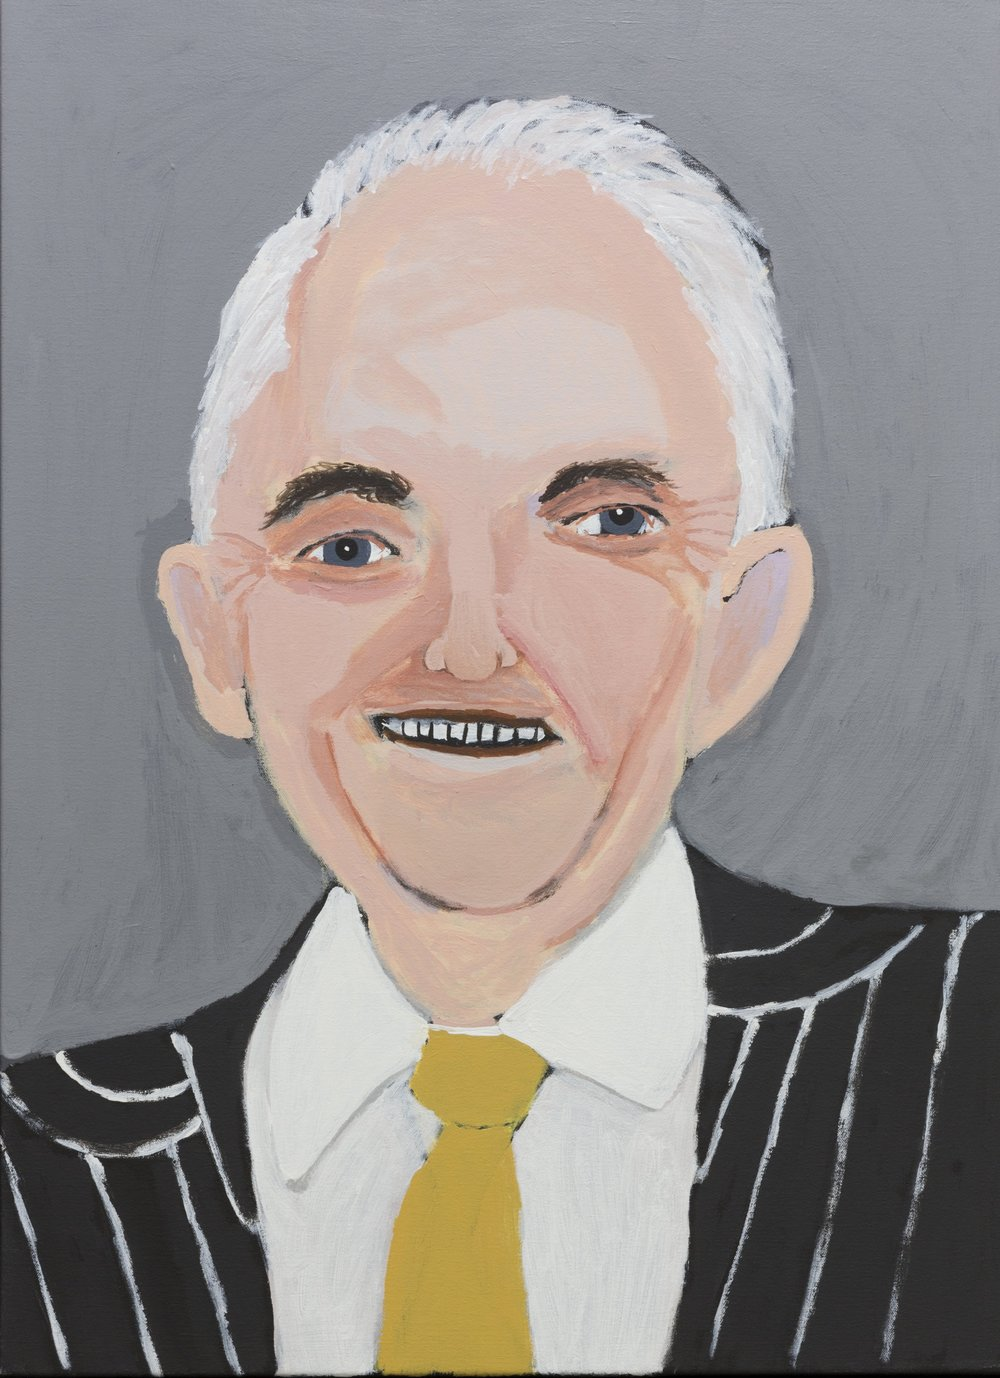 Vincent Namatijira,  Malcolm Turnbull,  2016, acrylic on canvas, 91 x 67 cm. Courtesy of the artist, THIS IS NO FANTASY + dianne tanzer gallery and Iwantja Arts.